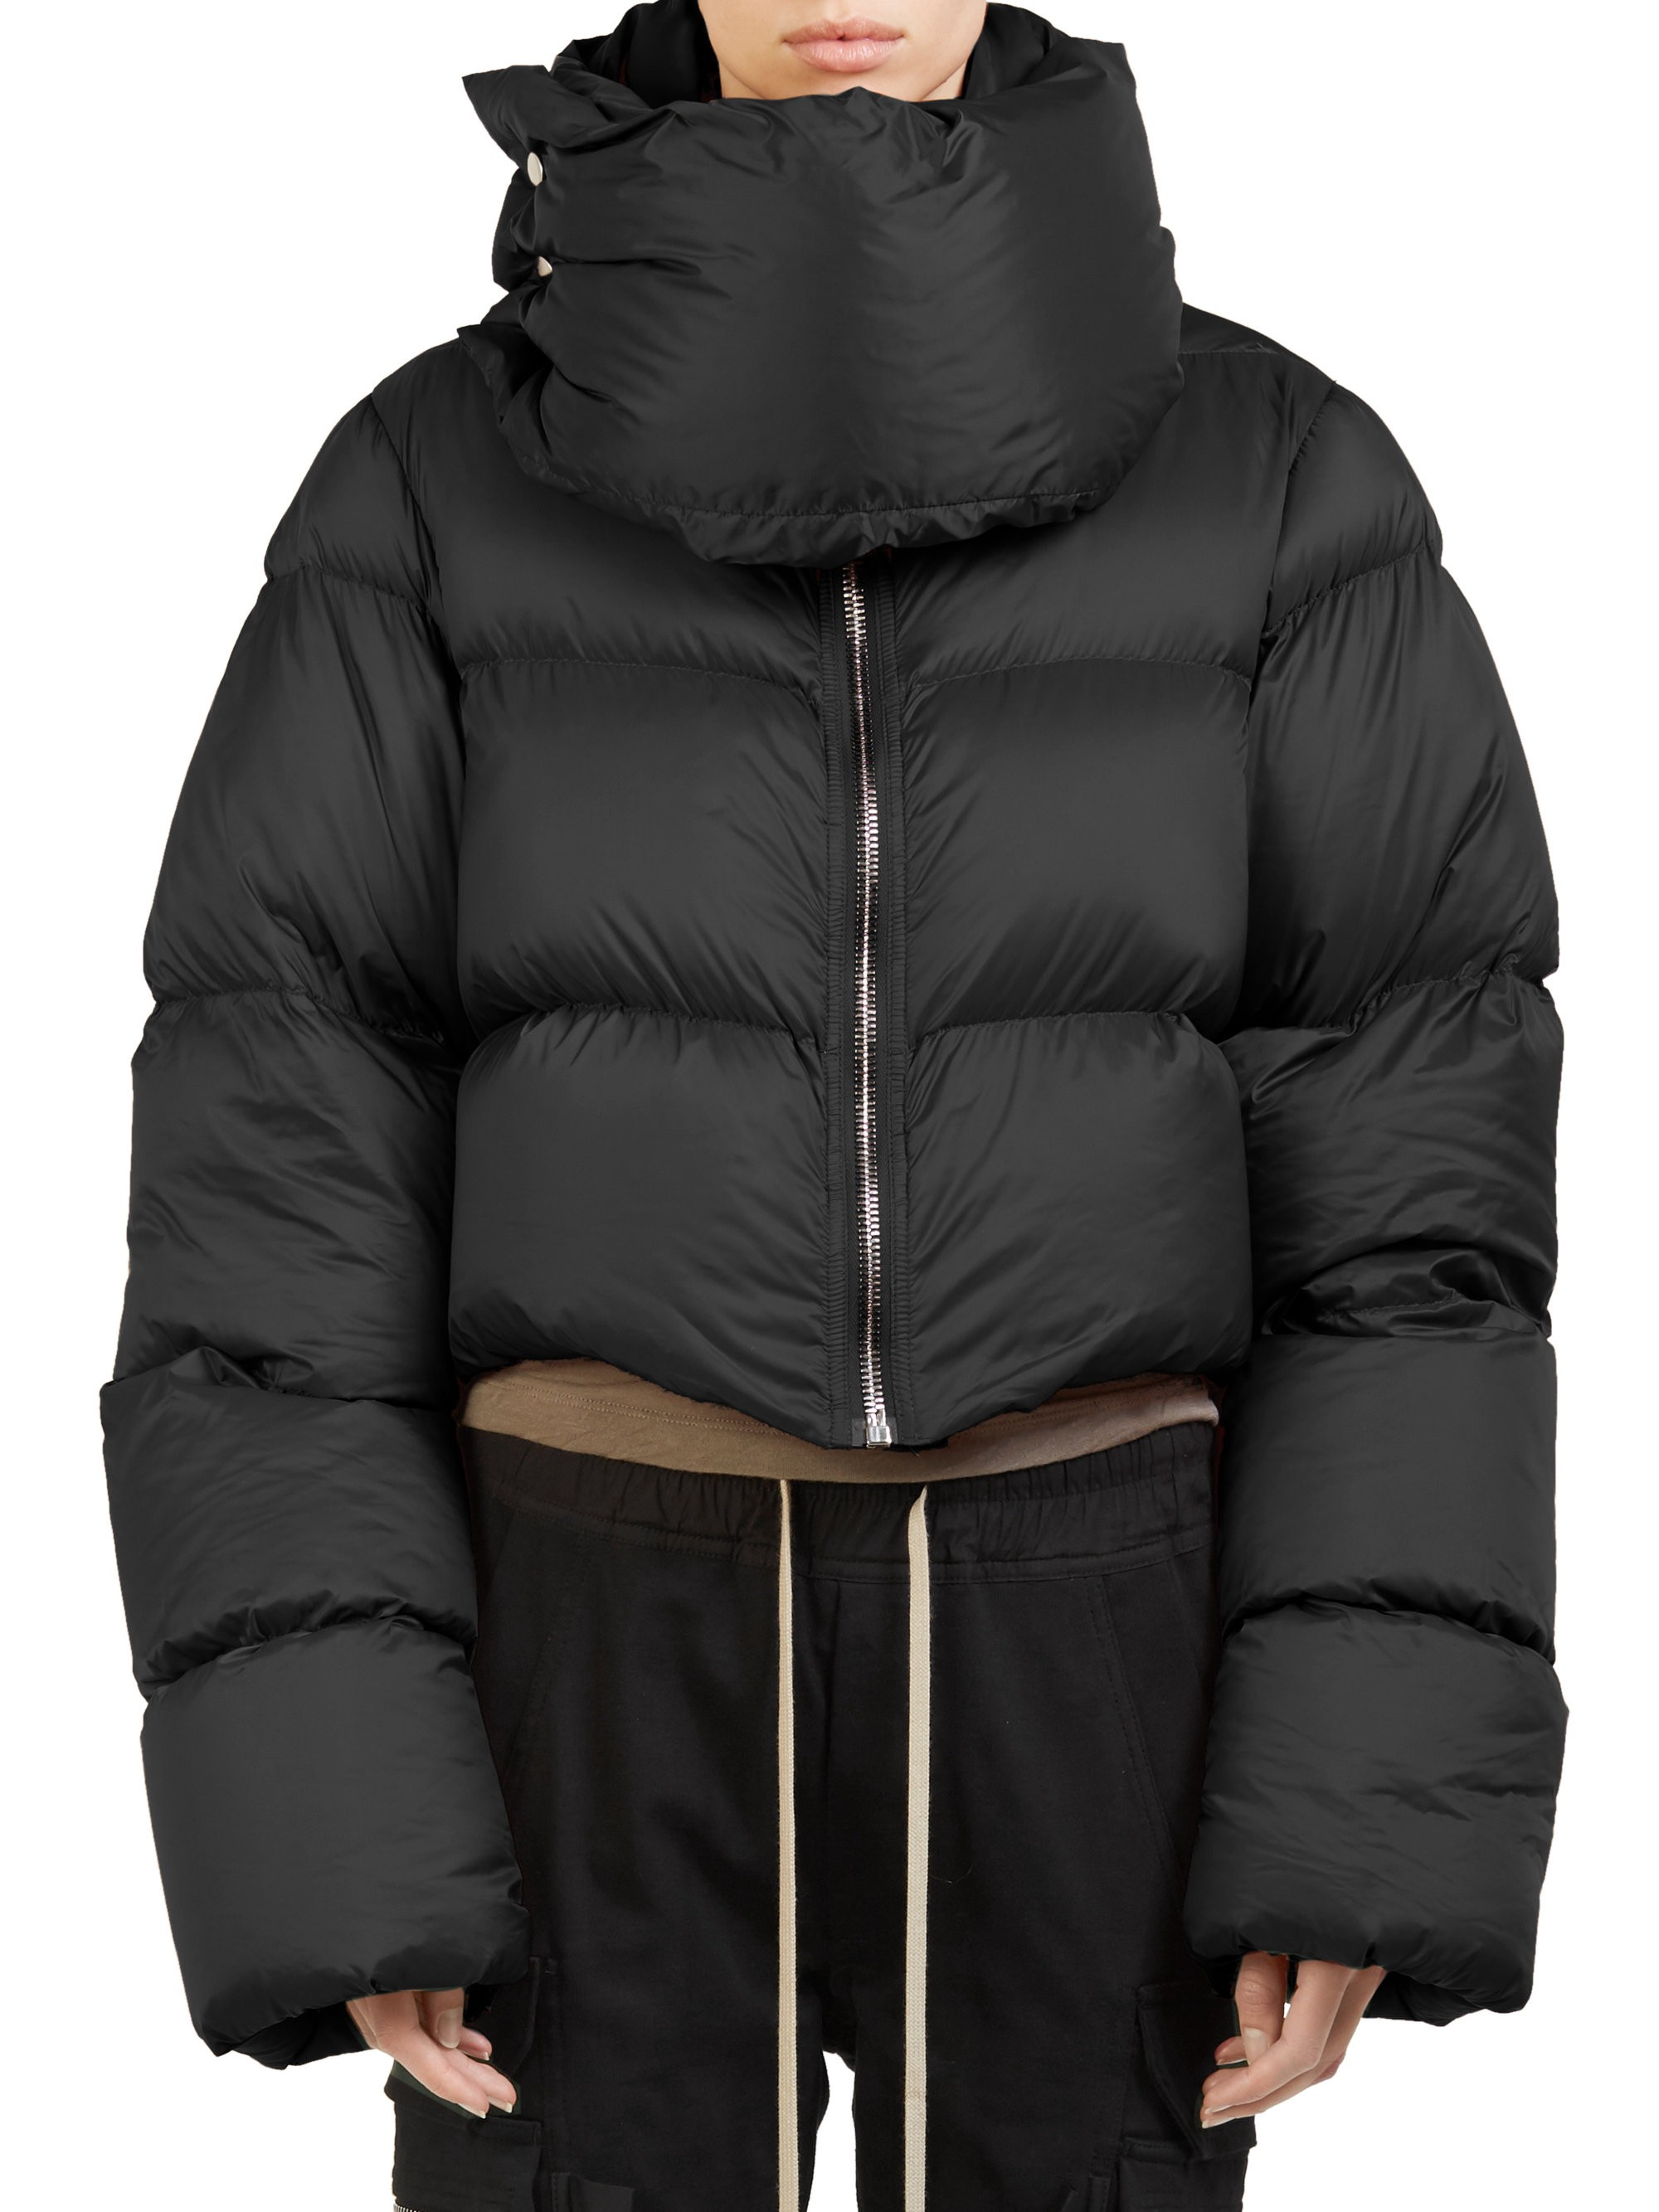 Rick Owens Funnel Neck Cropped Puffer Jacket Black 46 10 Jackets Puffer Jacket Black Puffer [ 2667 x 2000 Pixel ]